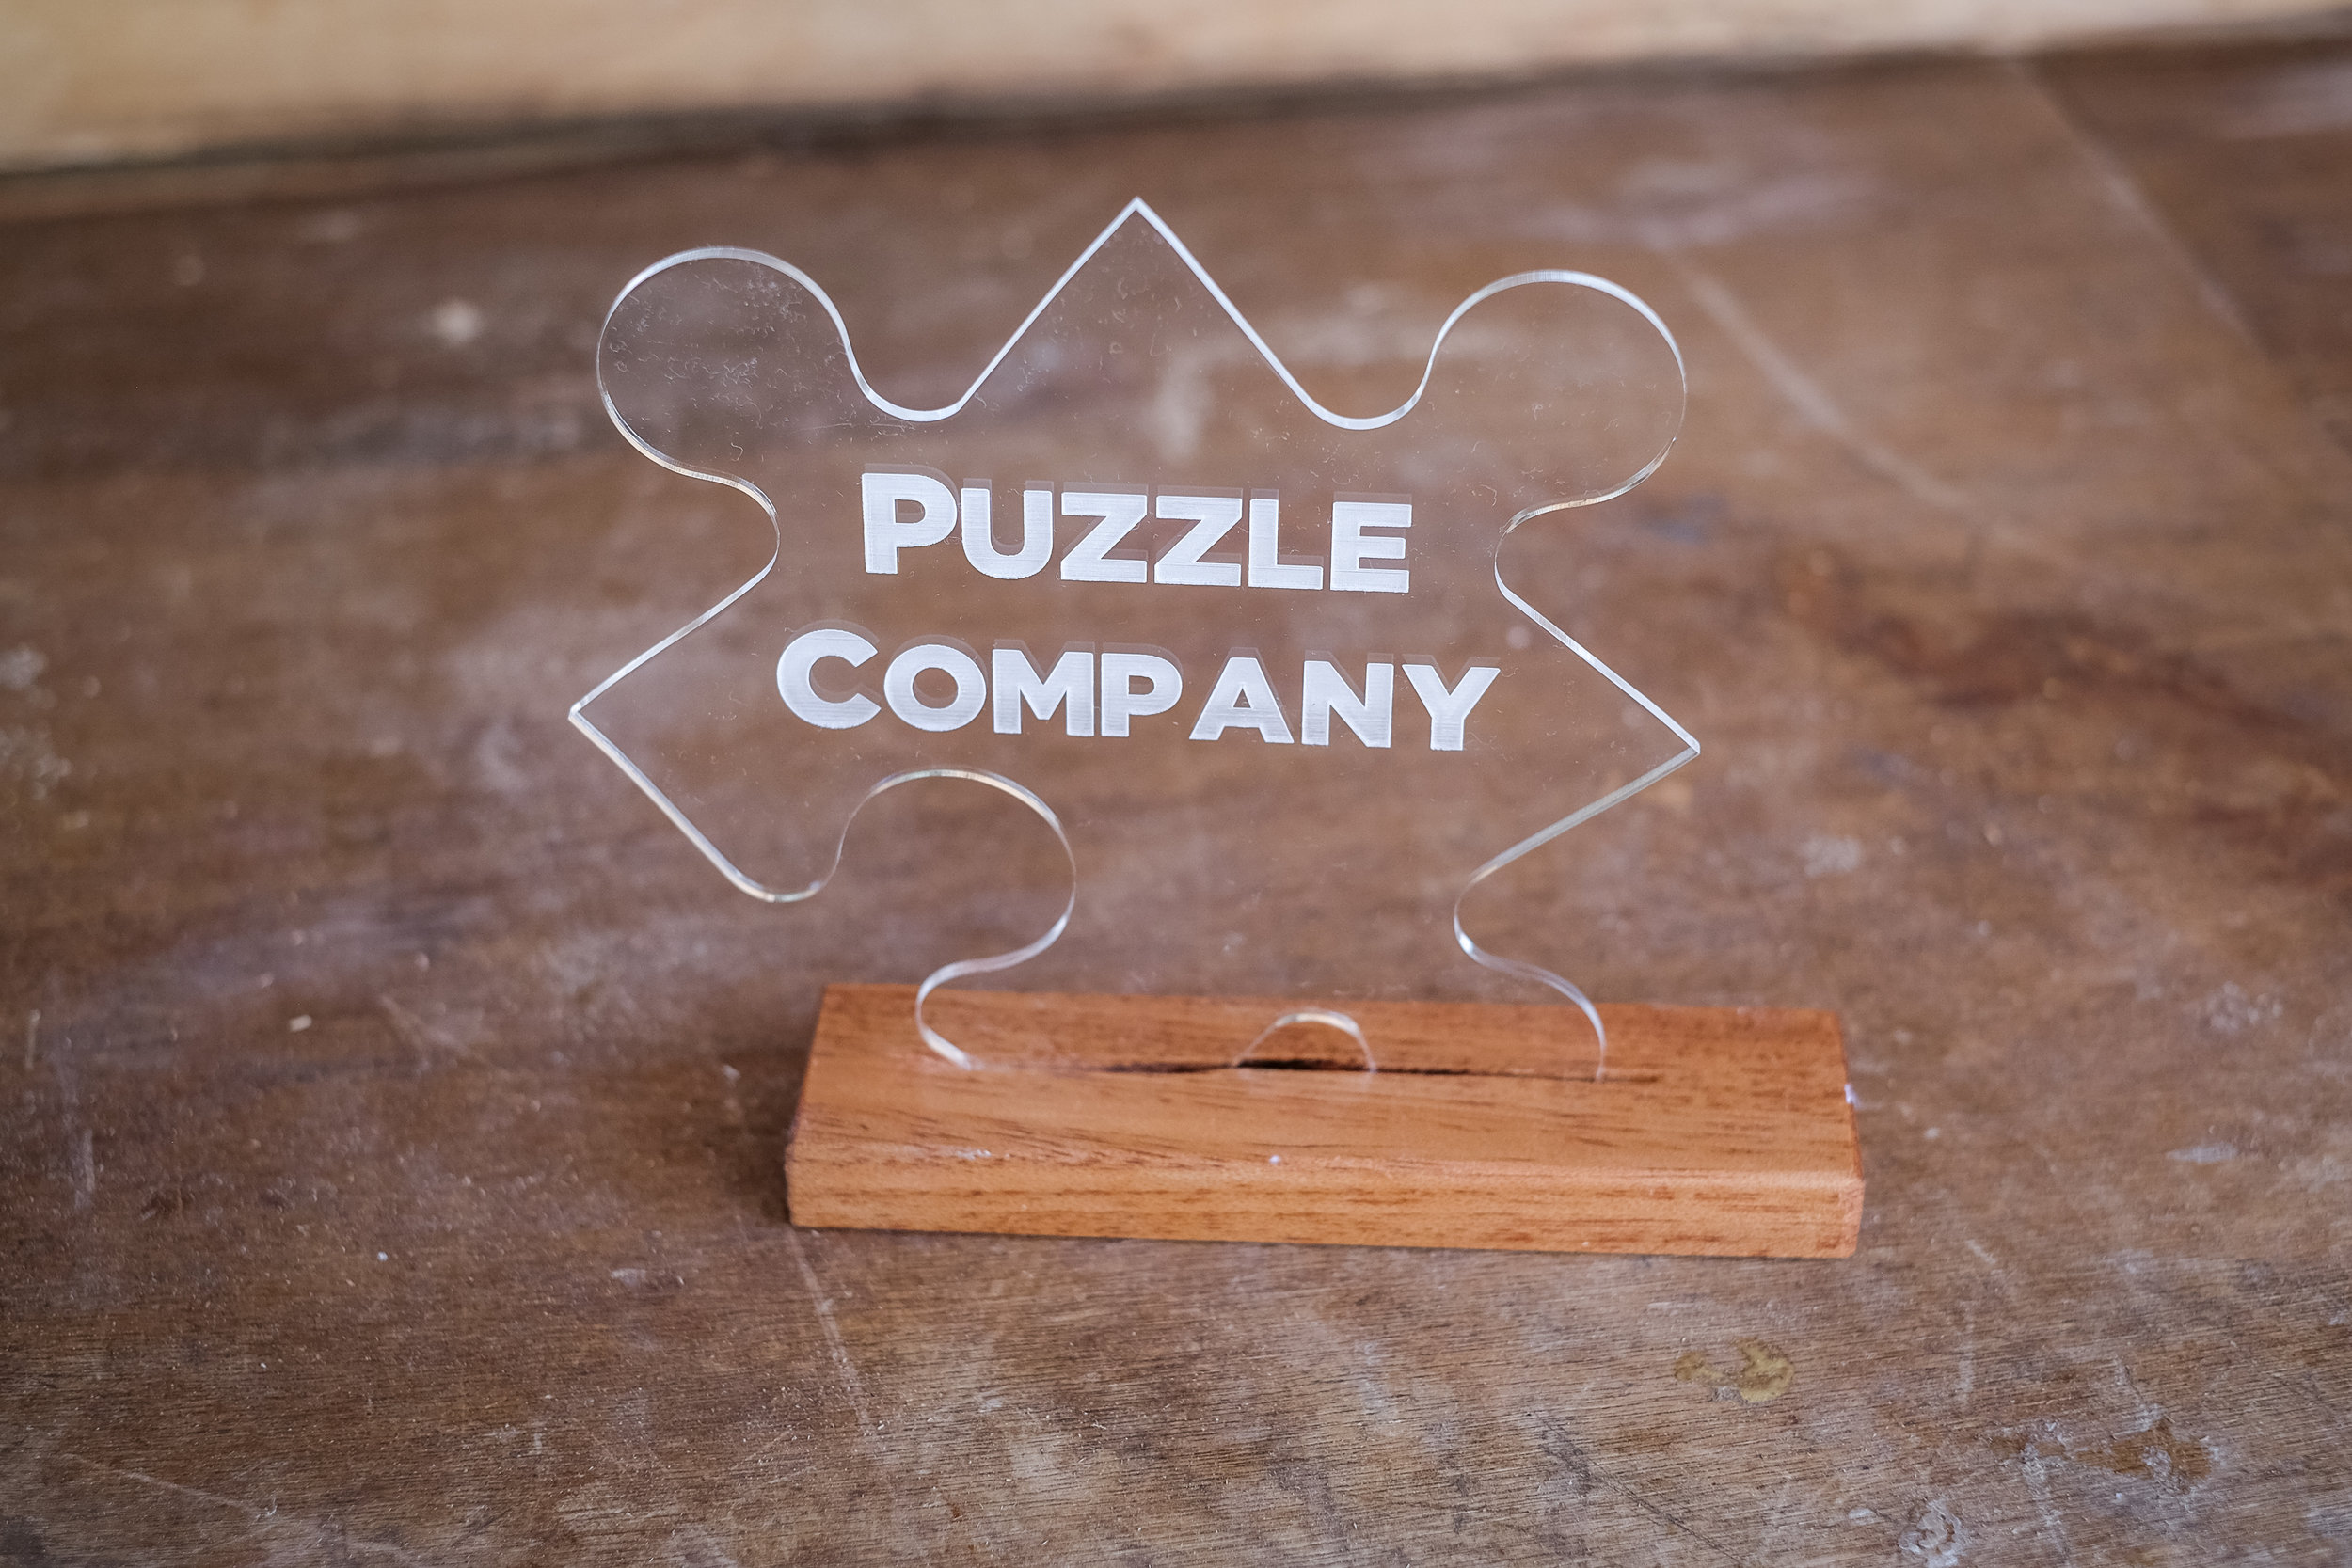 Puzzle Company's Creative Award  Photo credit: JPixel Photography -  Http://jpixelrealestate.com